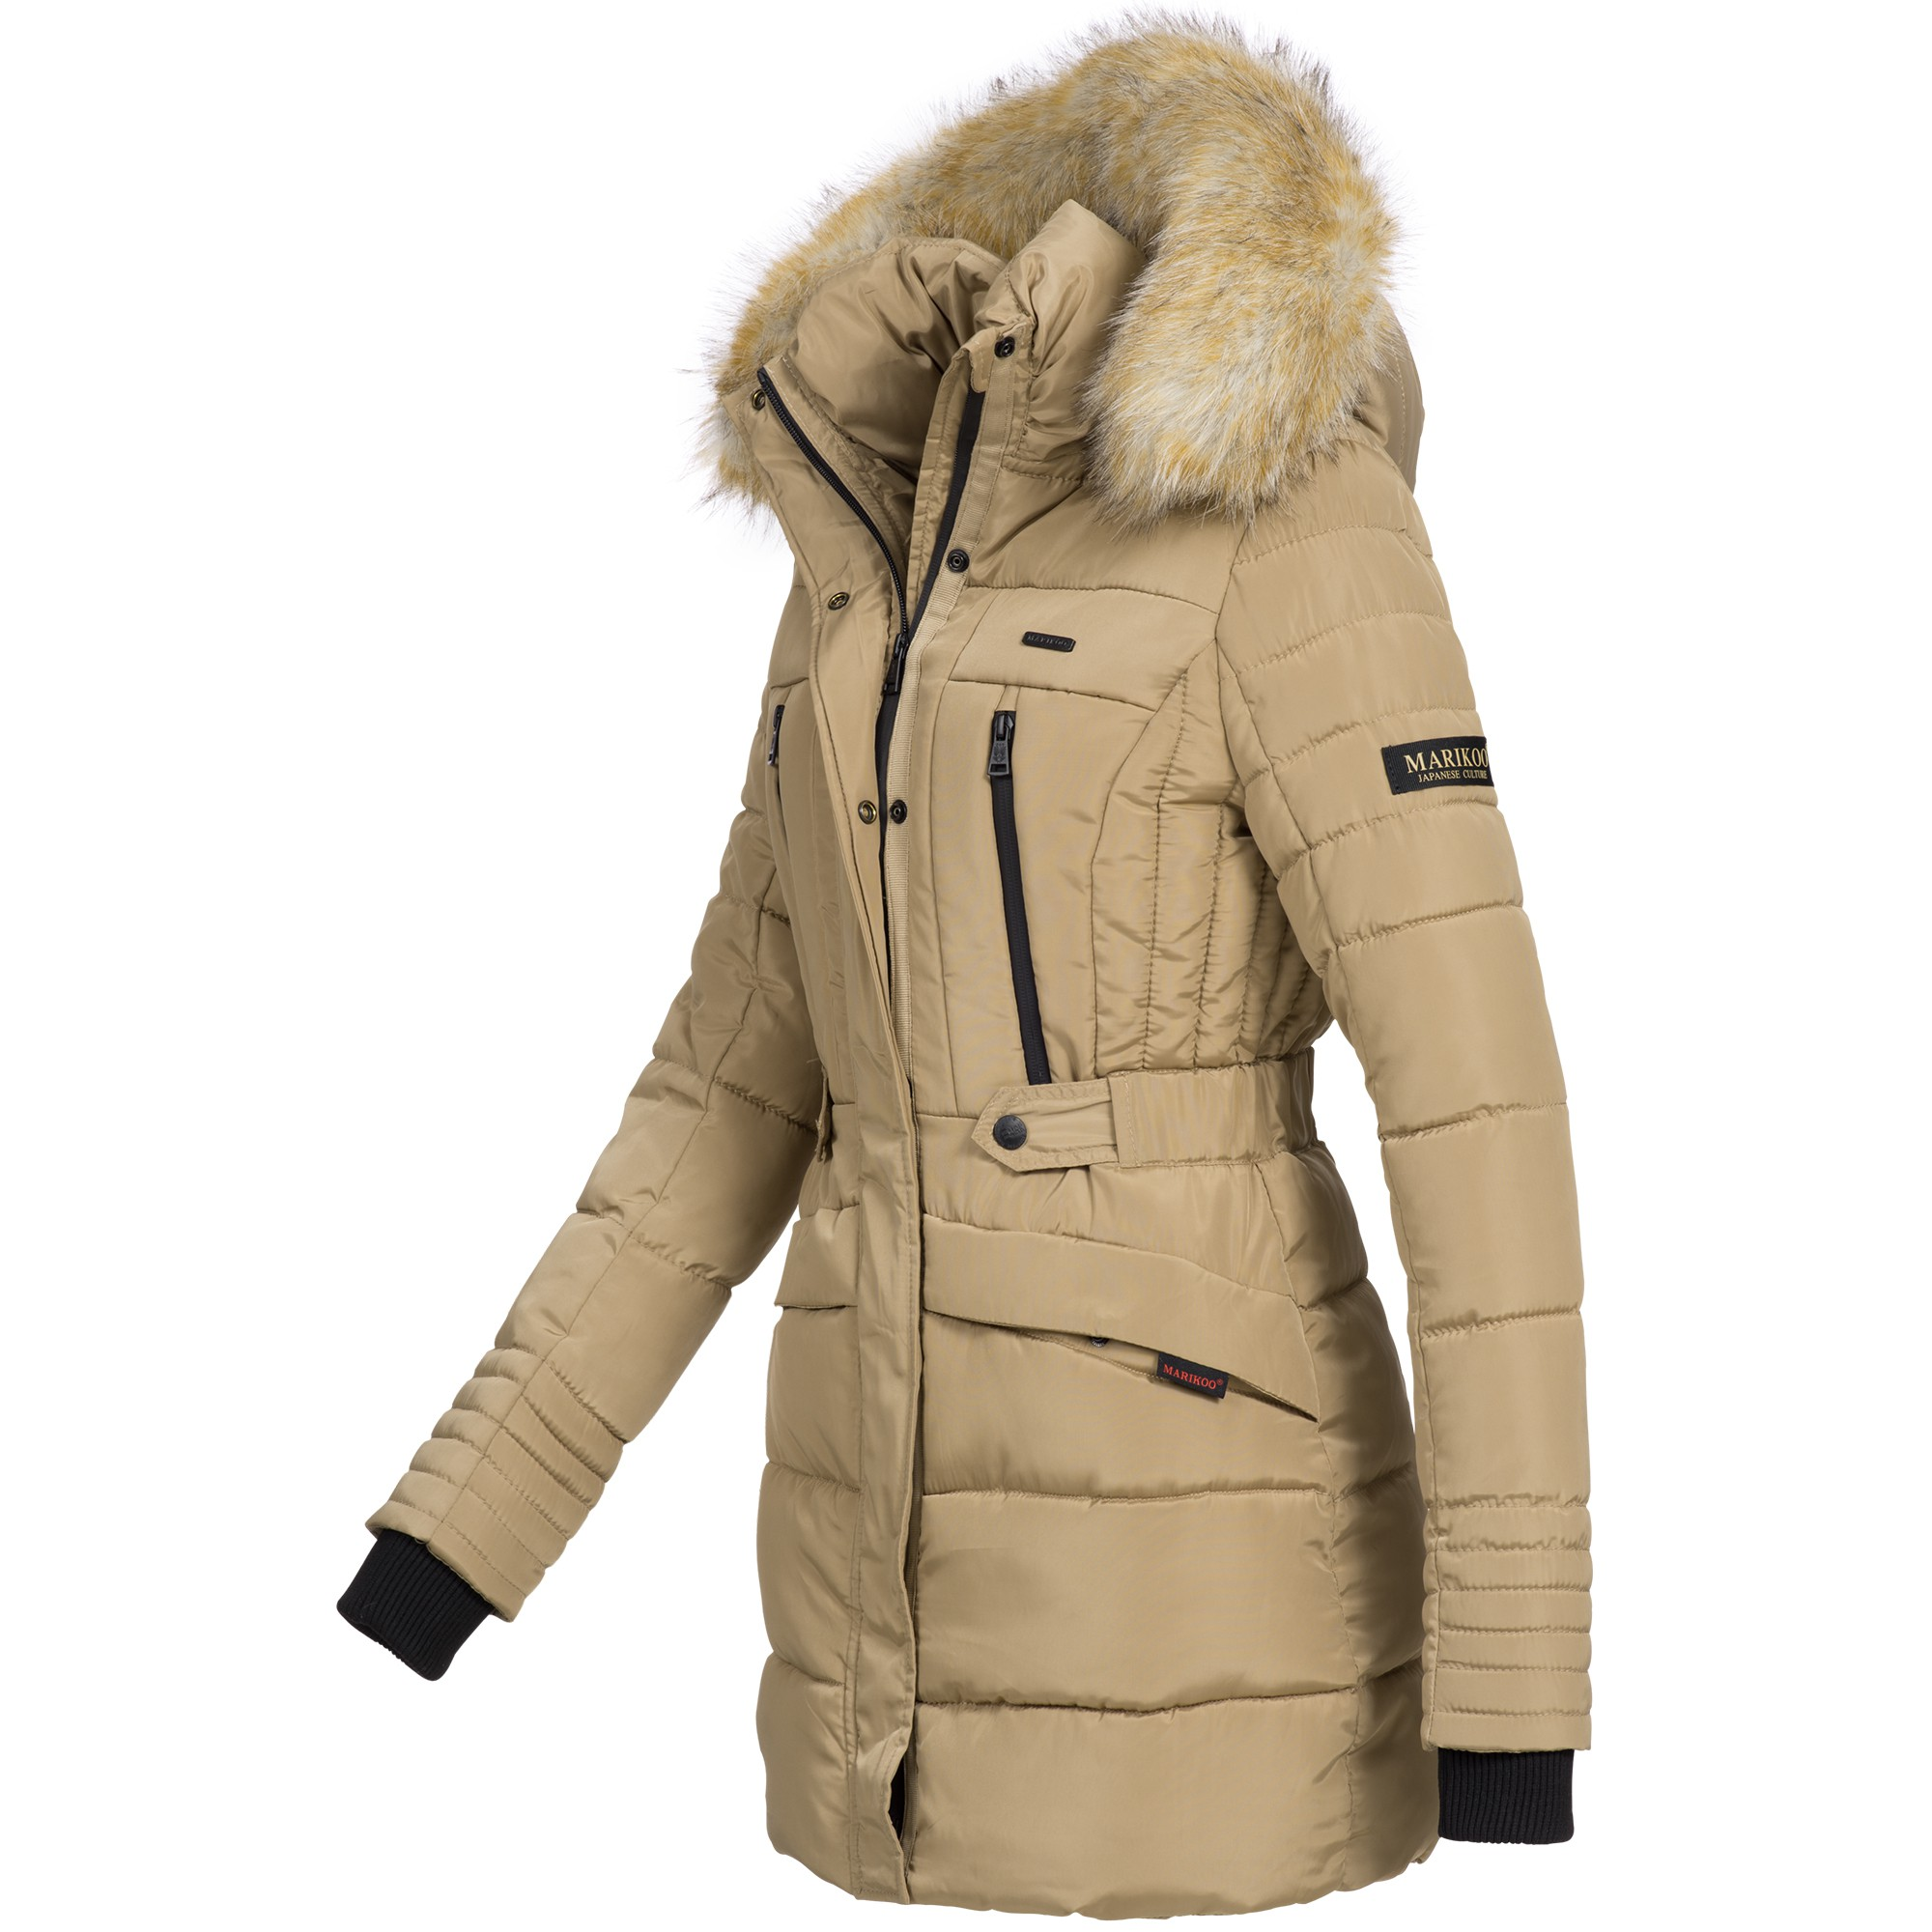 marikoo nova damen mantel wintermantel steppjacke winter jacke lang xs xxl ebay. Black Bedroom Furniture Sets. Home Design Ideas